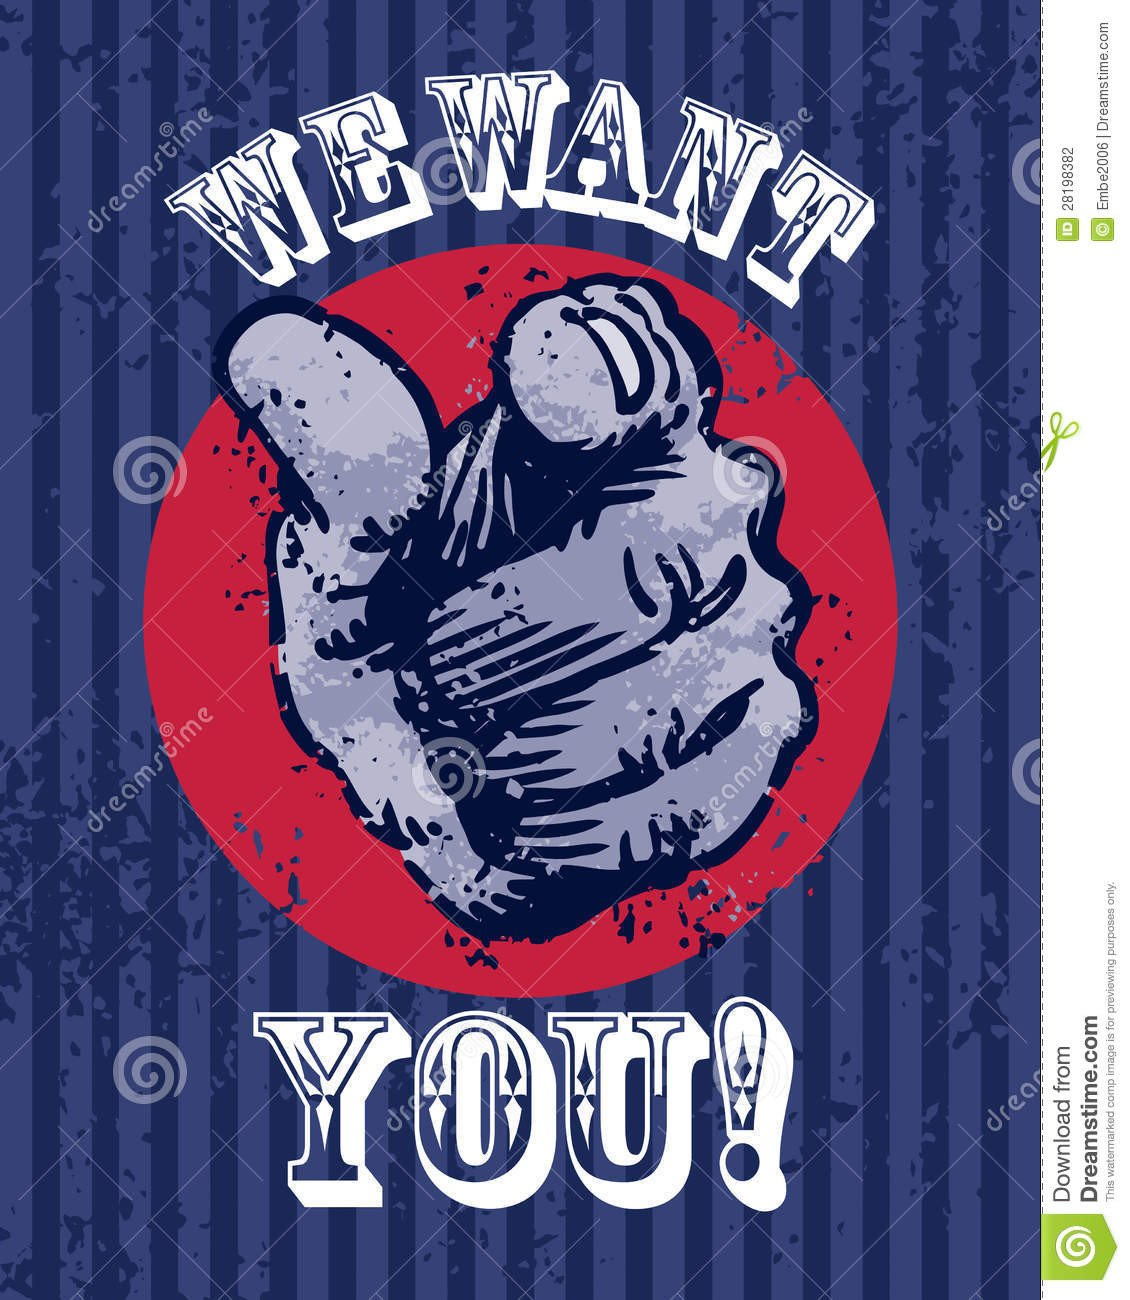 We Want You Poster We Want You Poster Stock Vector Illustration Of Pointing